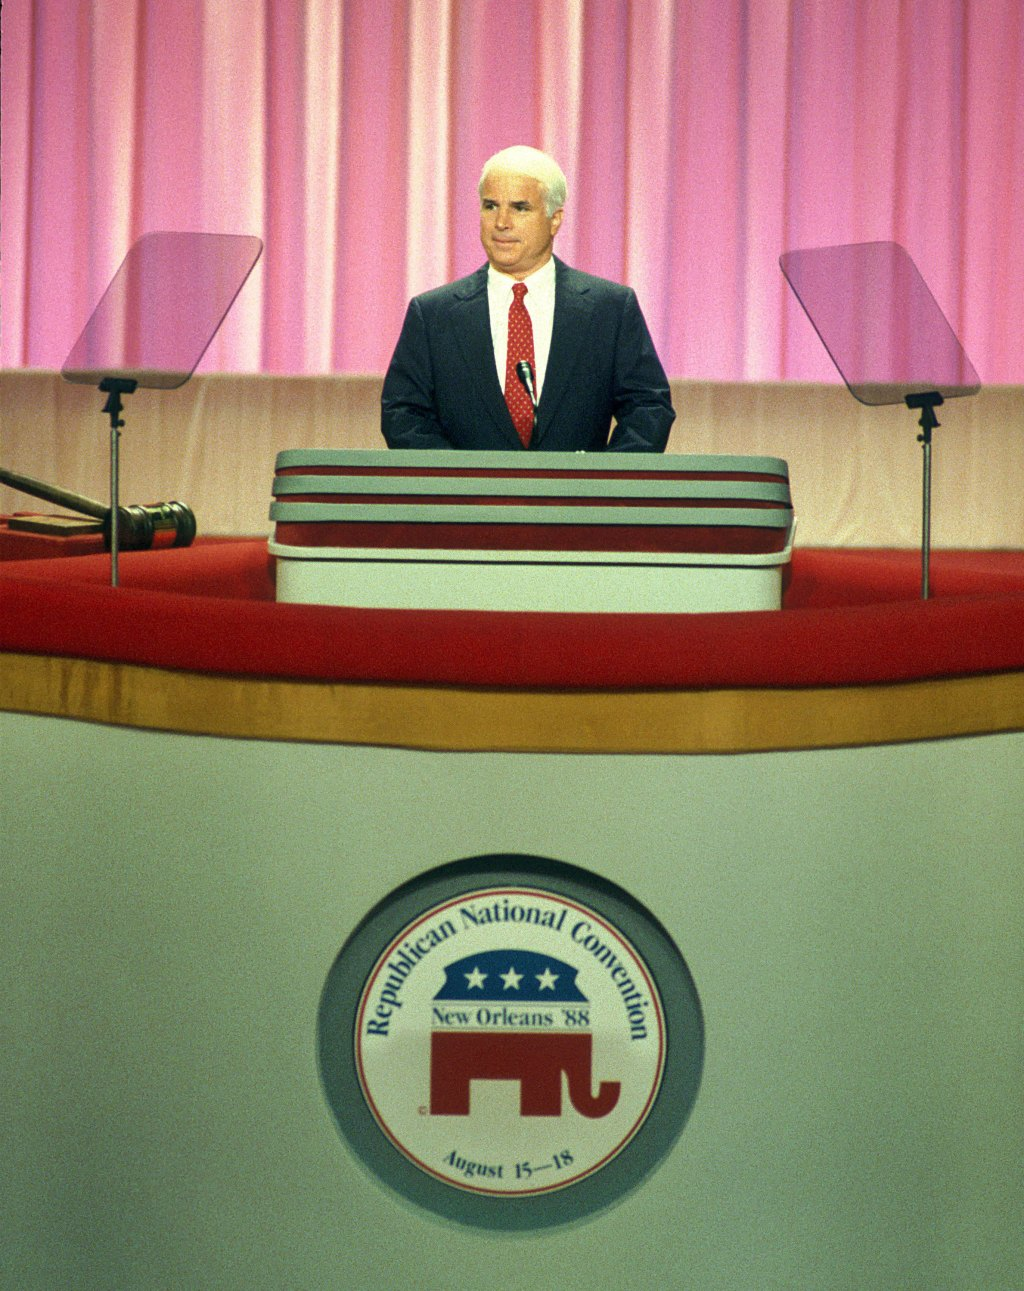 Sen. John McCain of Arizona makes a point during his address to the Republican National Convention in New Orleans on the opening day of the convention at the Superdome.